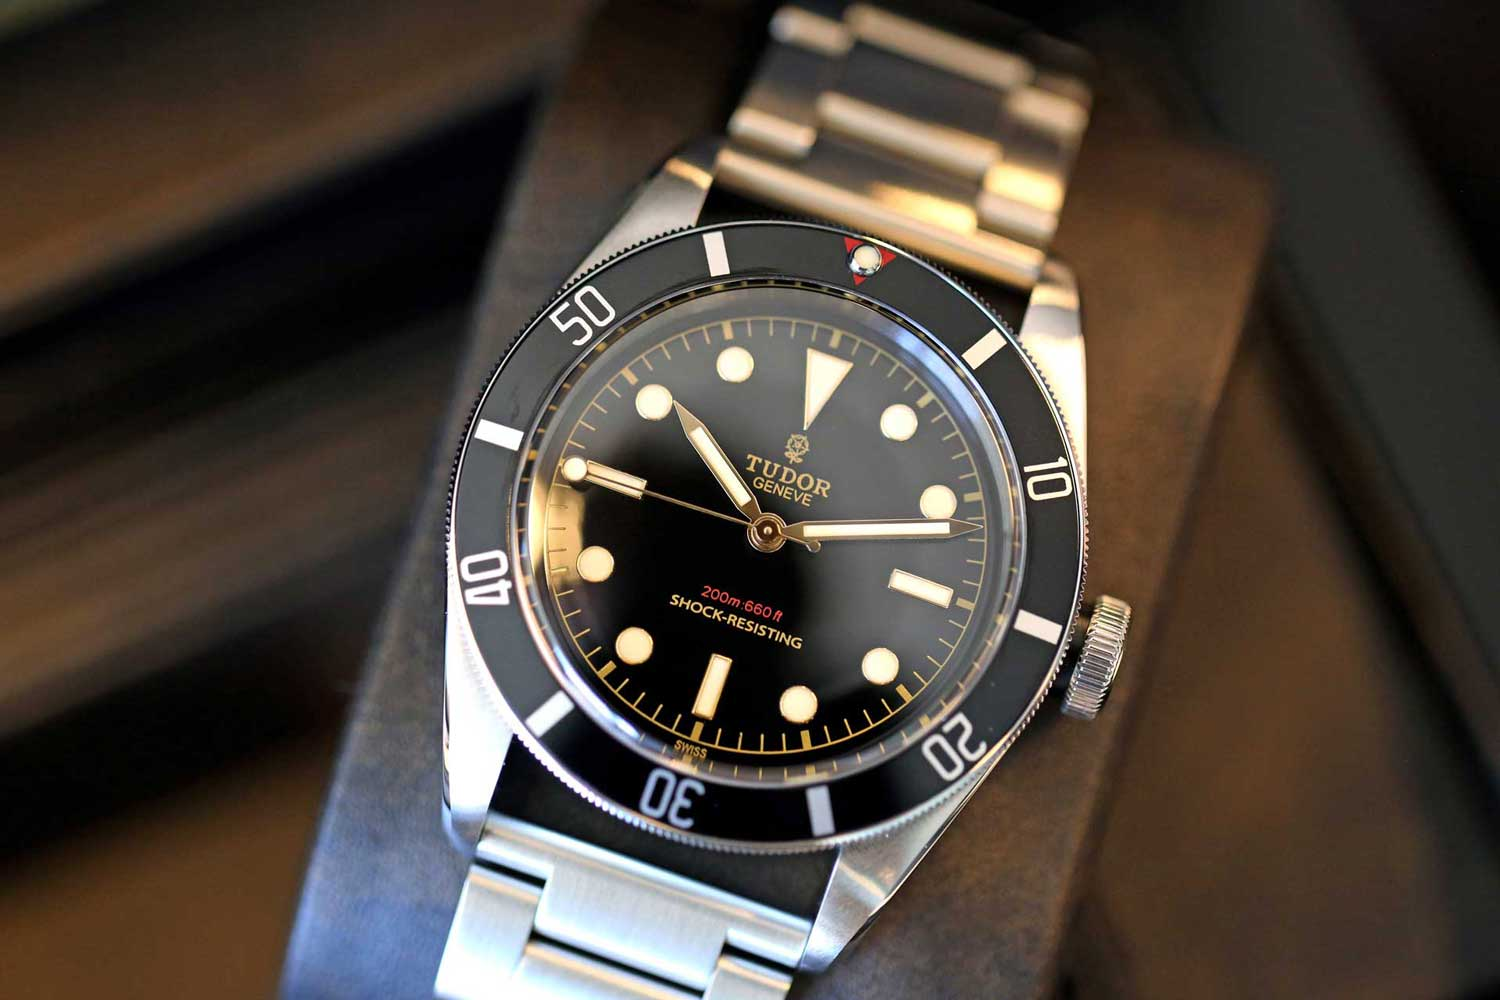 The Tudor Heritage Black Bay One, which sold for an unprecedented 375,000 Swiss Francs at Only Watch 2015